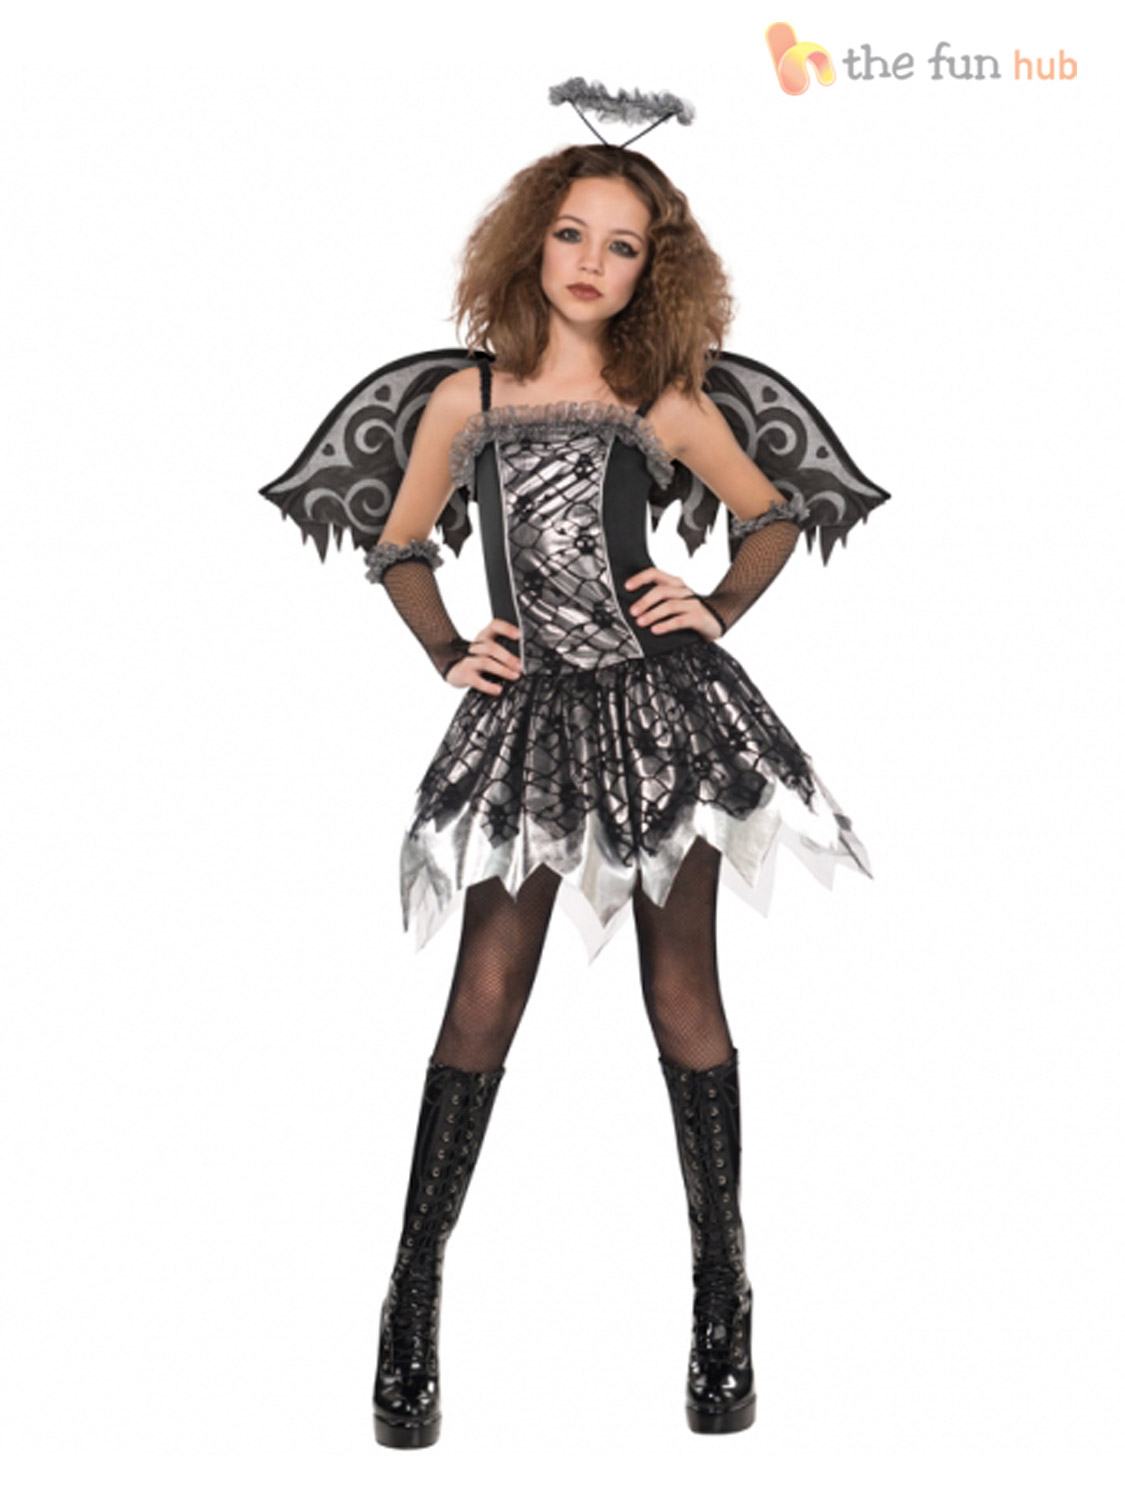 17 needlessly sexy Halloween costumes for little girls